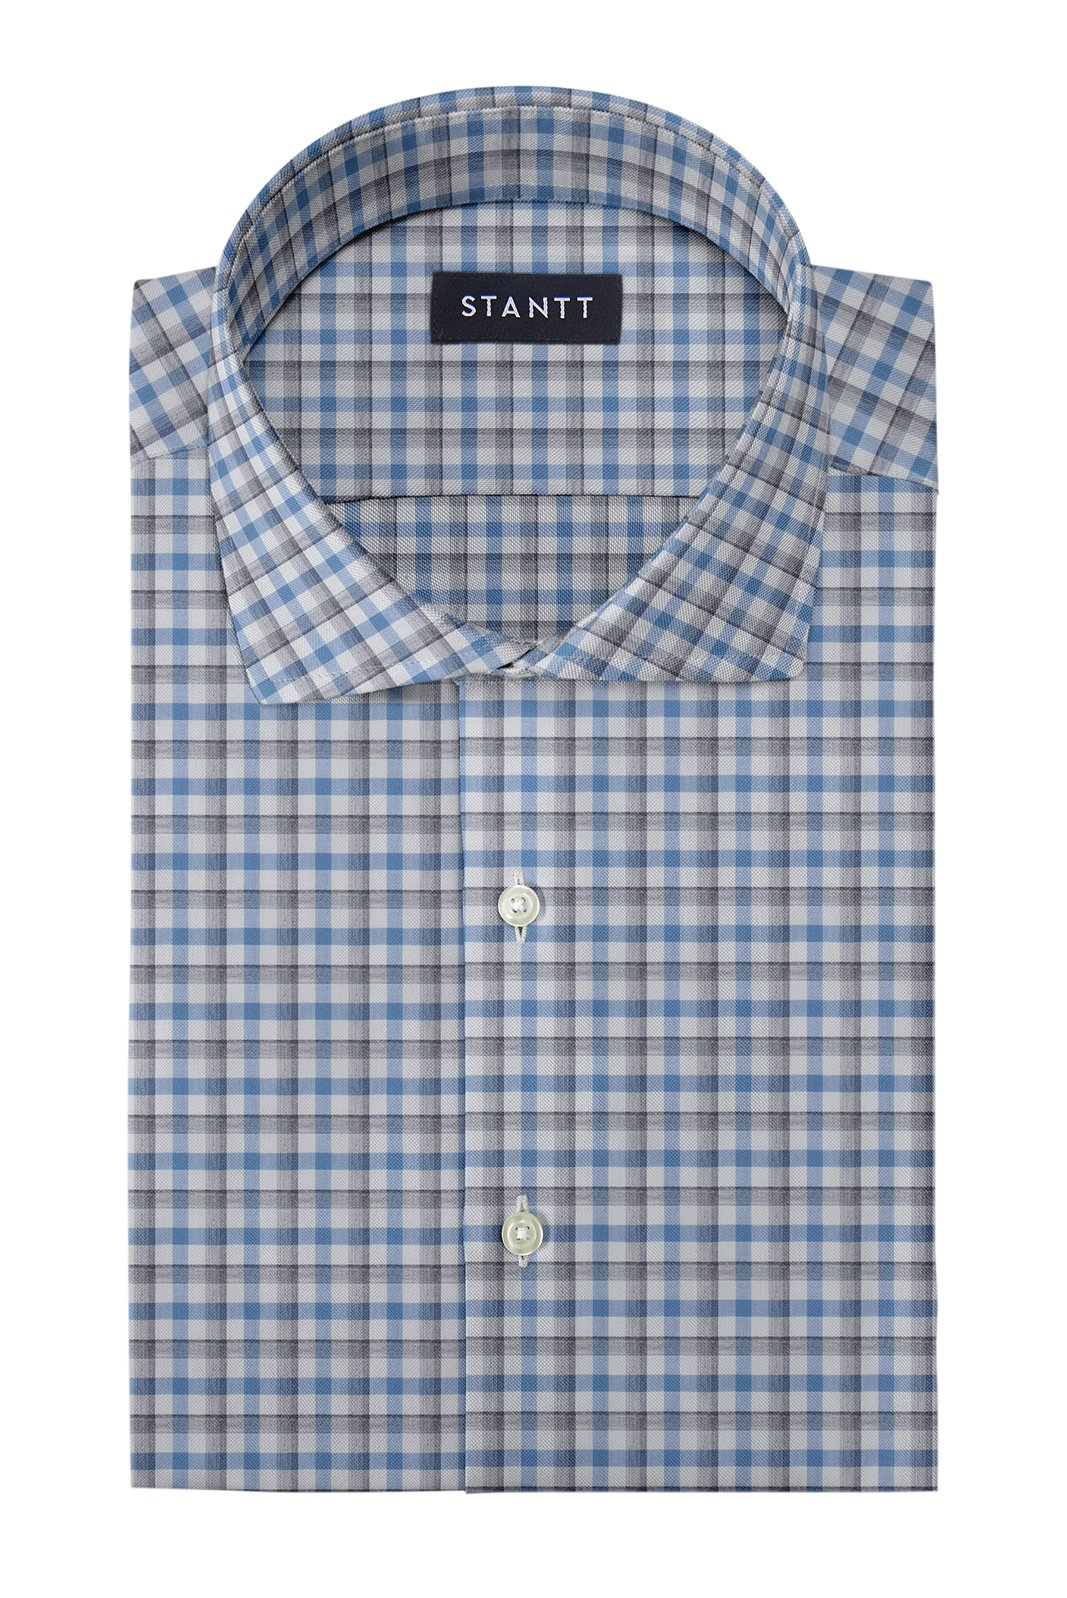 Melange Grey and Blue Check: Cutaway Collar, Barrel Cuff